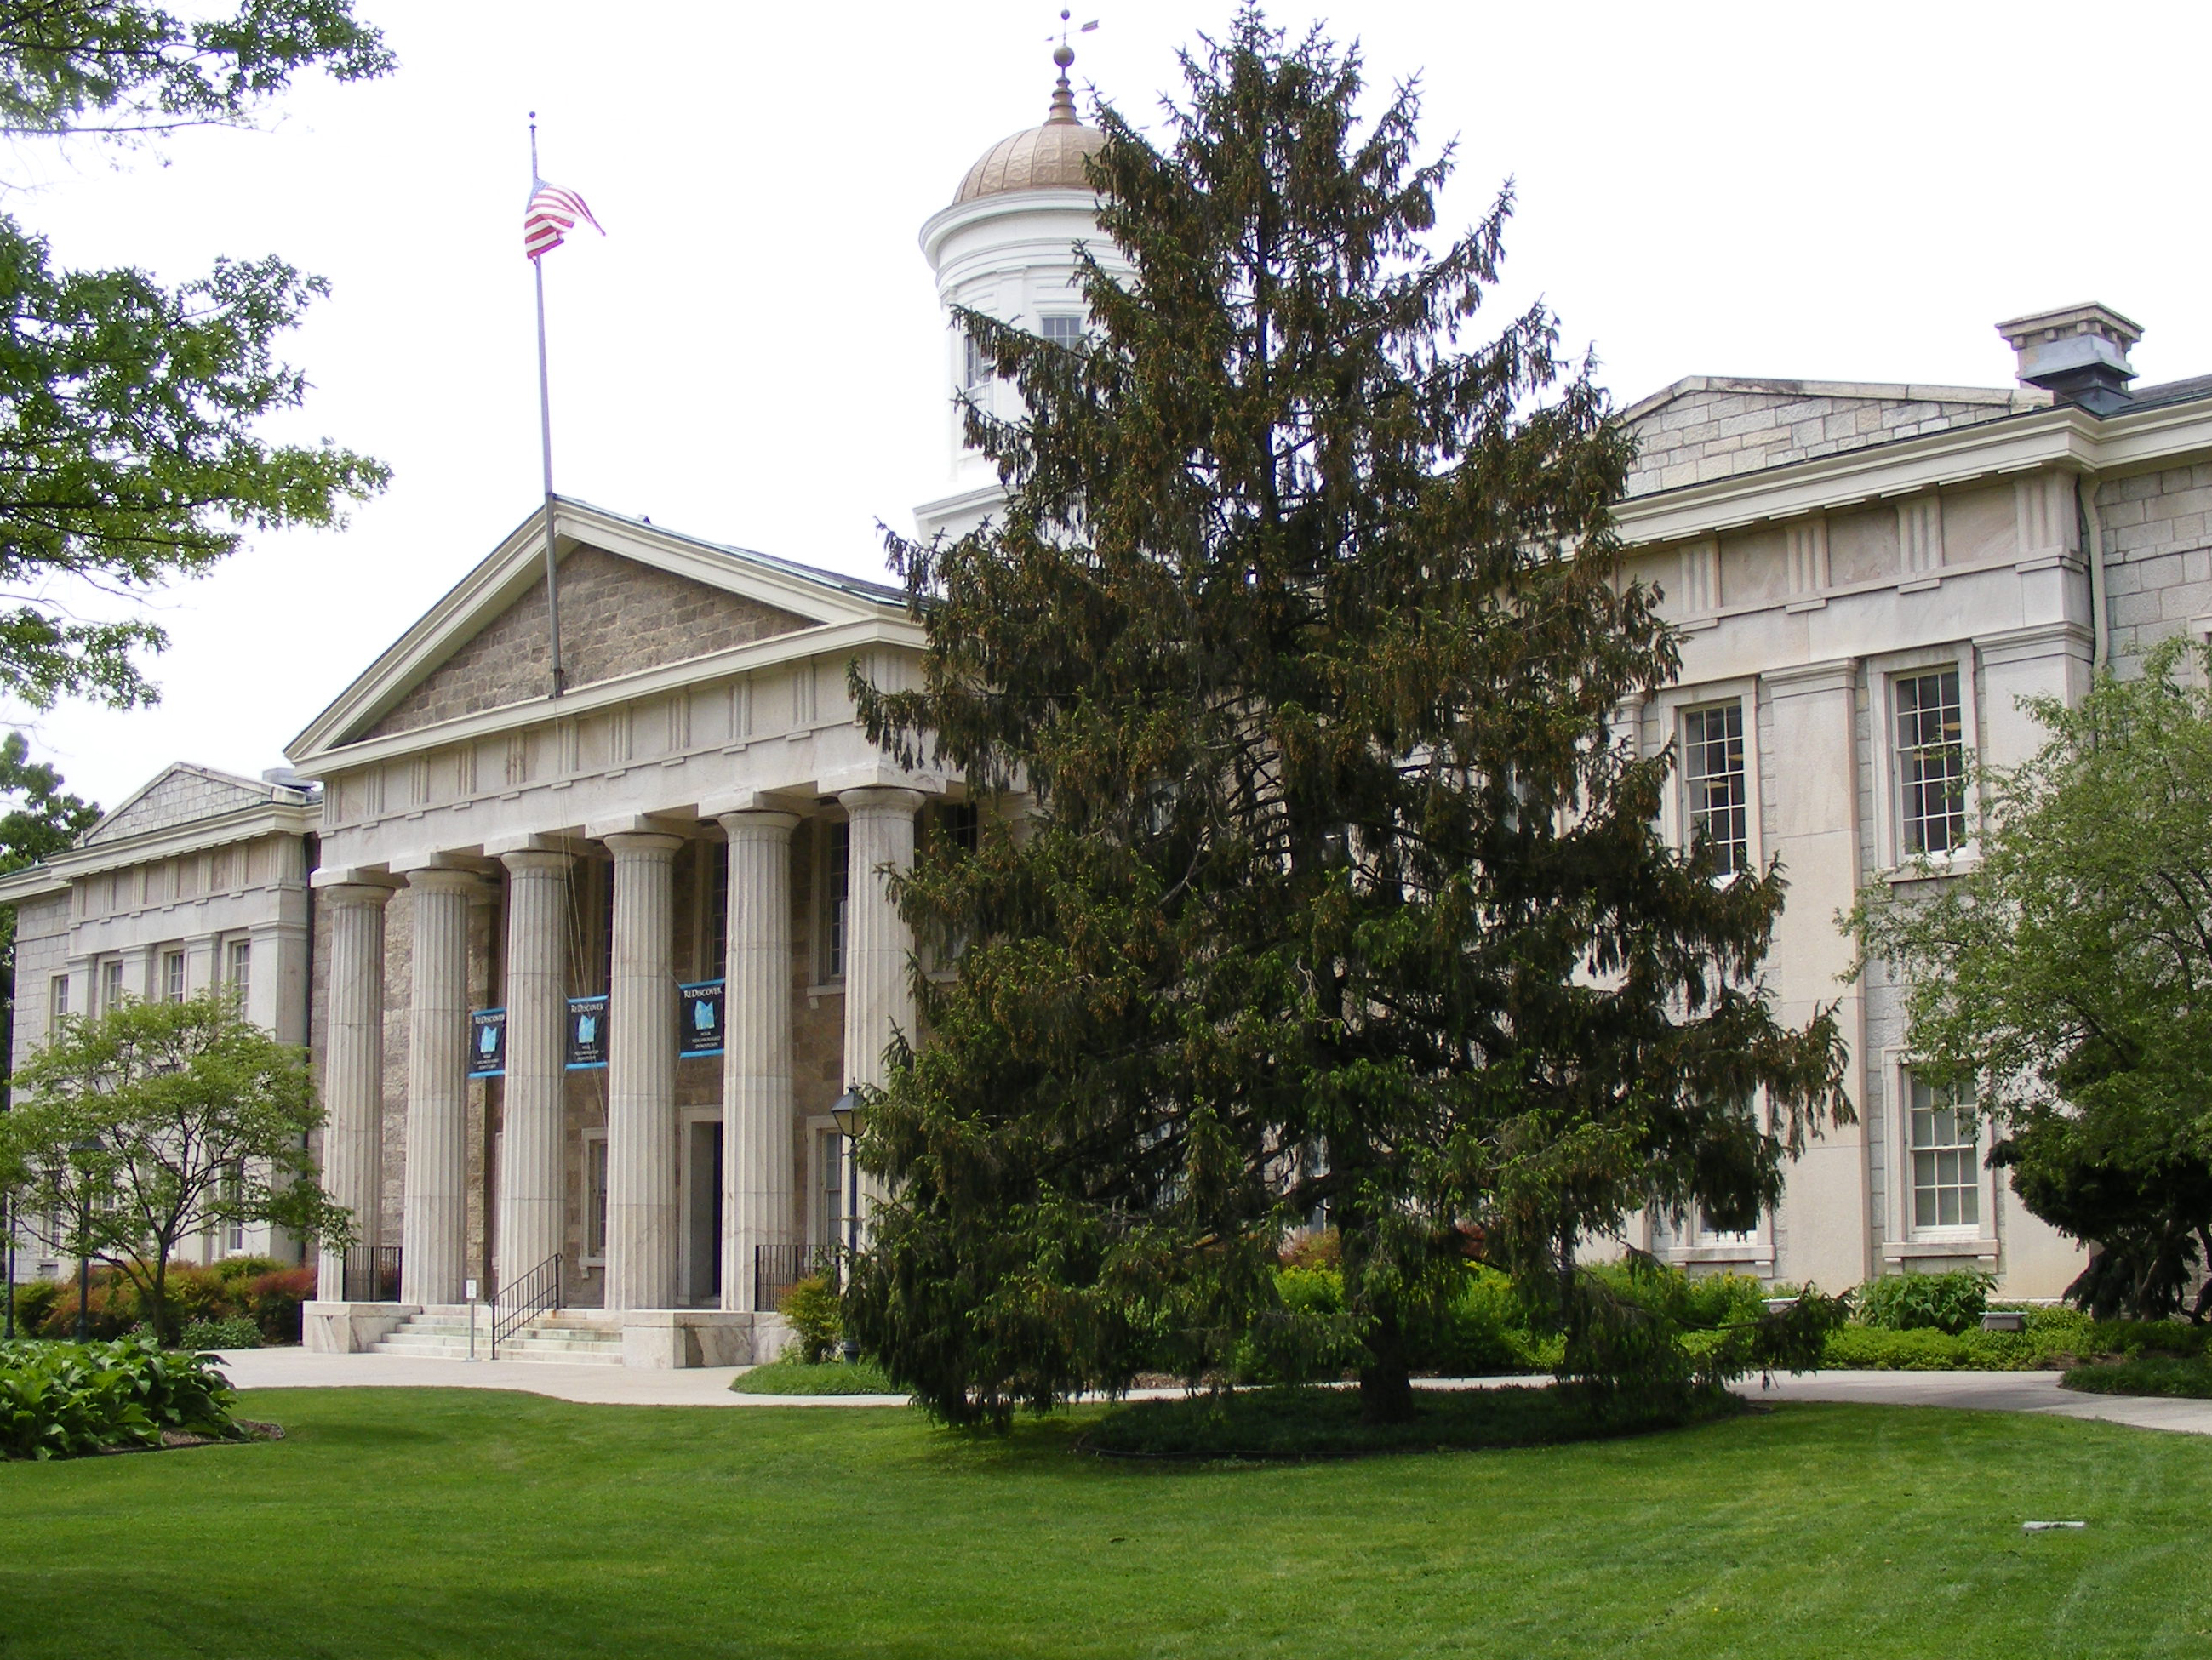 Baltimore County Circuit Courthouses - Wikipedia